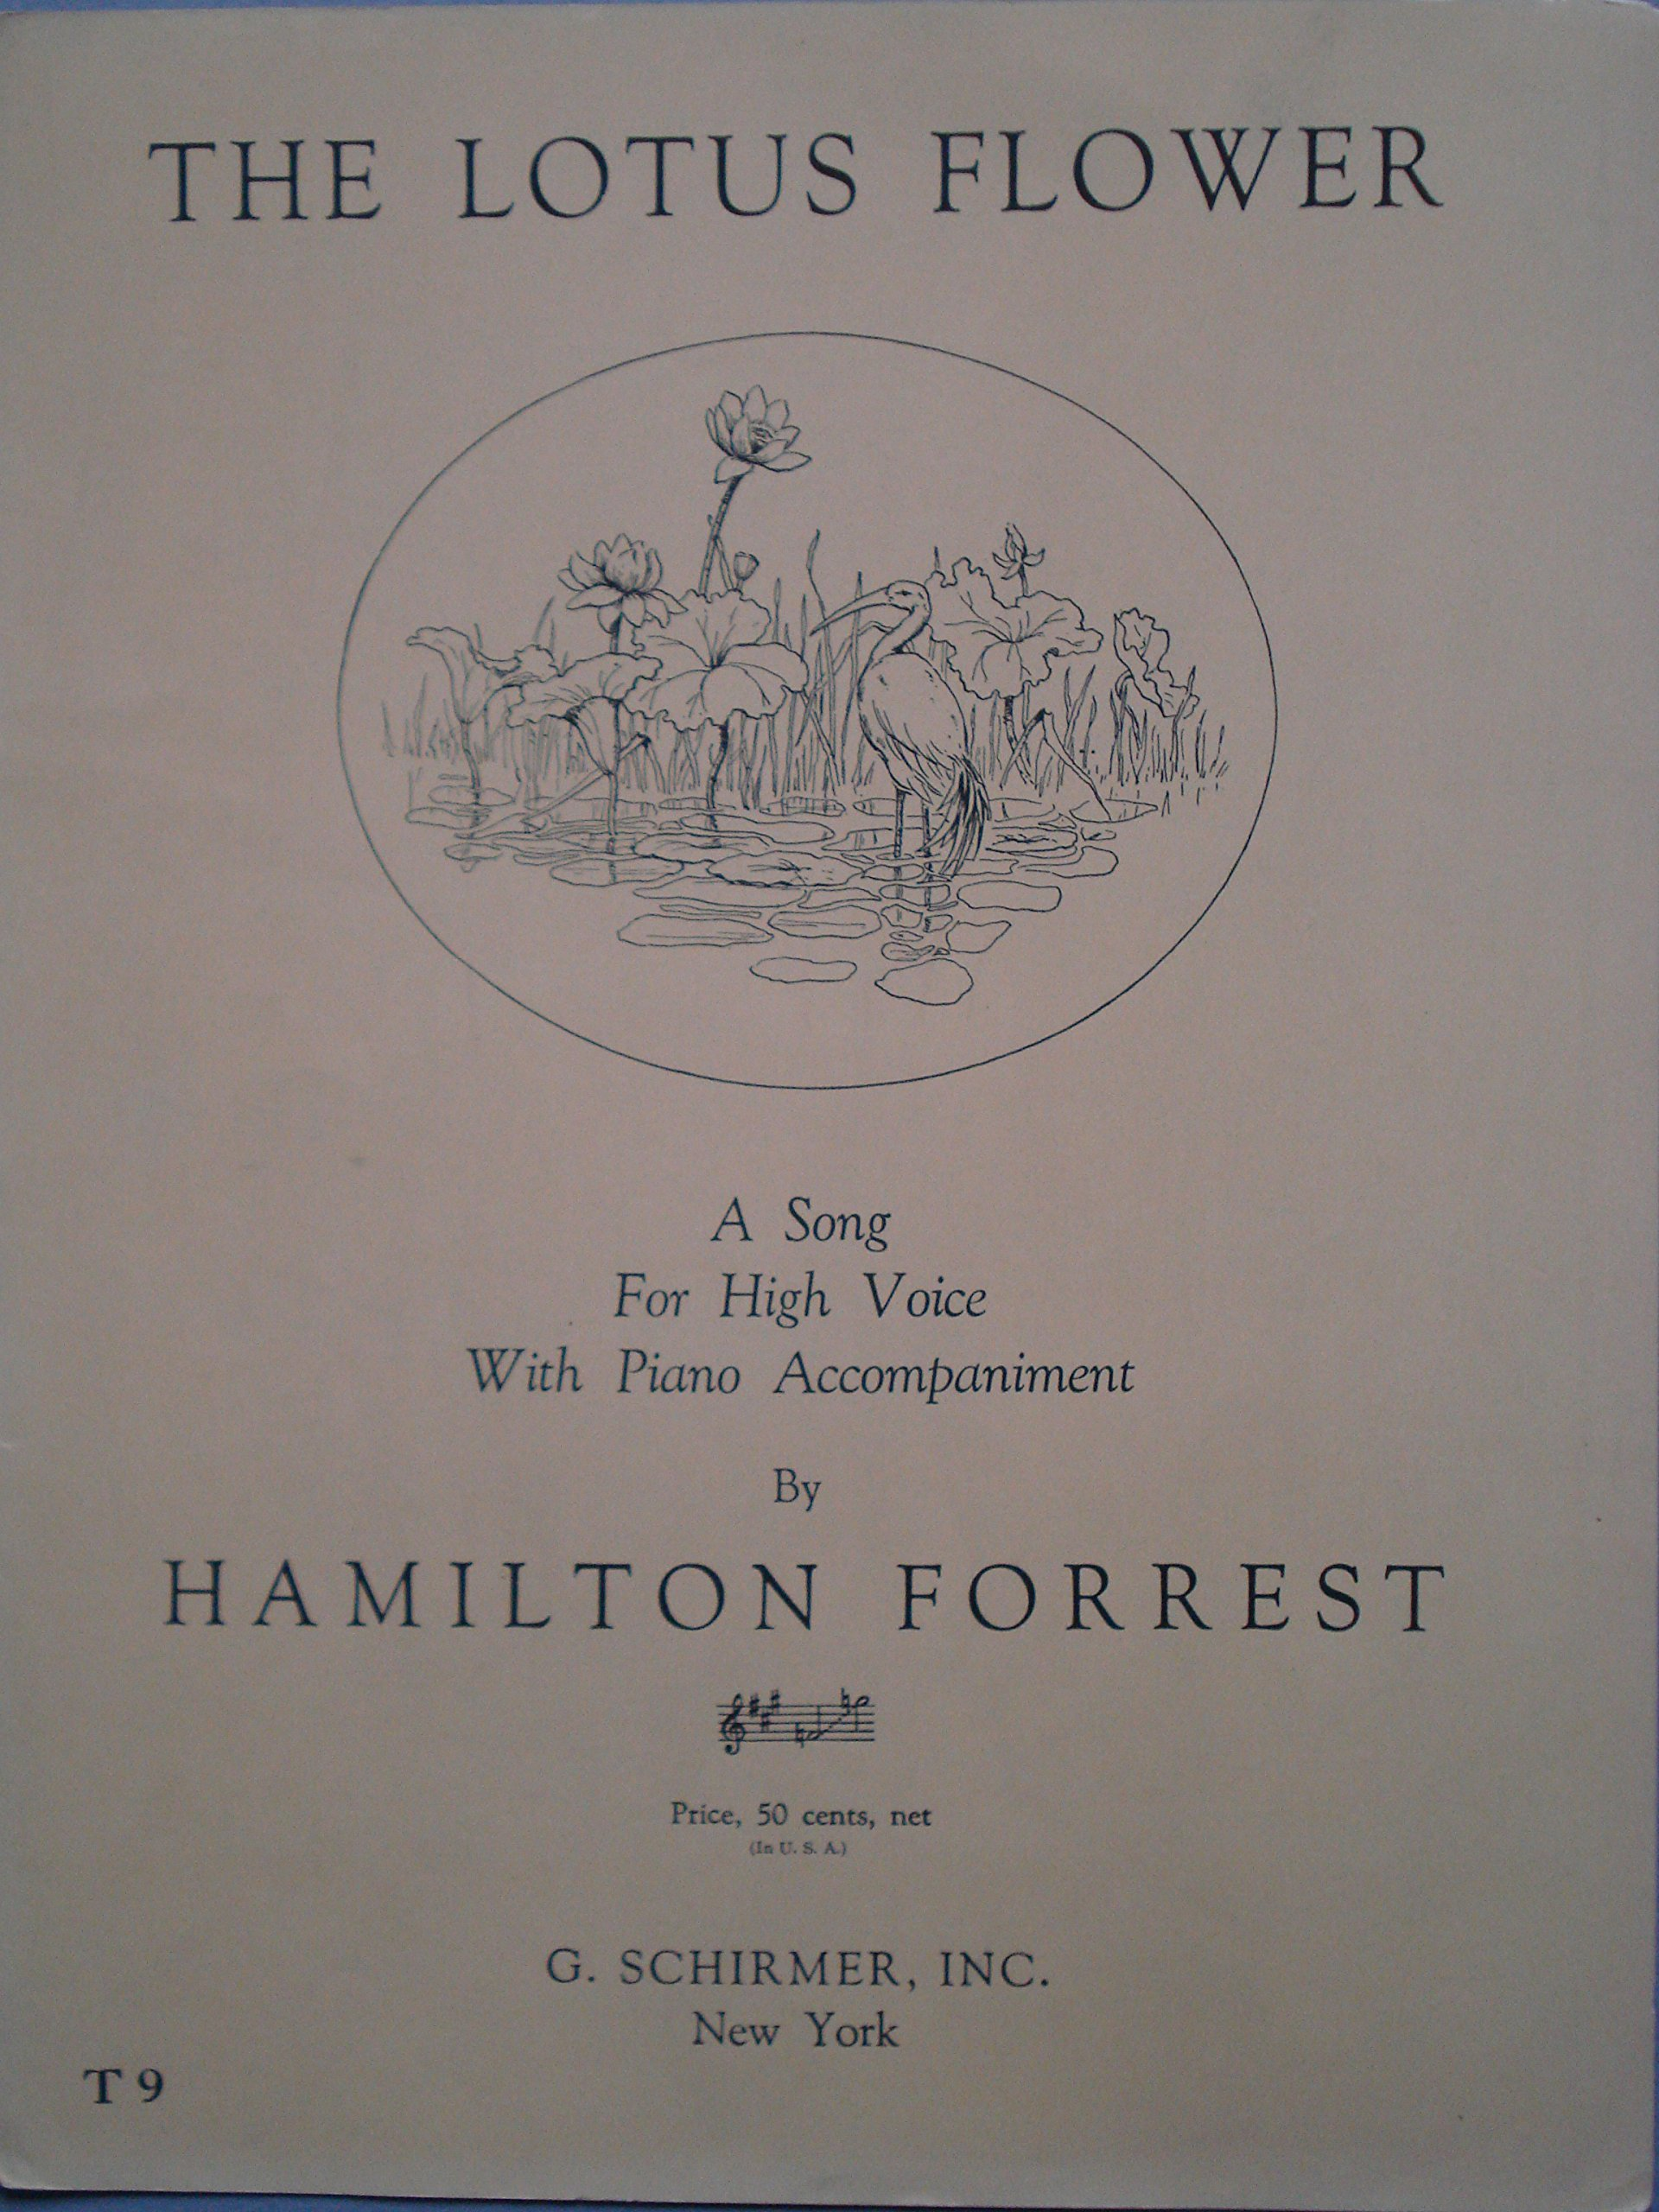 The lotus flower a song for high voice with piano accompaniment f the lotus flower a song for high voice with piano accompaniment f to g words and music by hamilton forrest hamilton forrest hamilton forrest izmirmasajfo